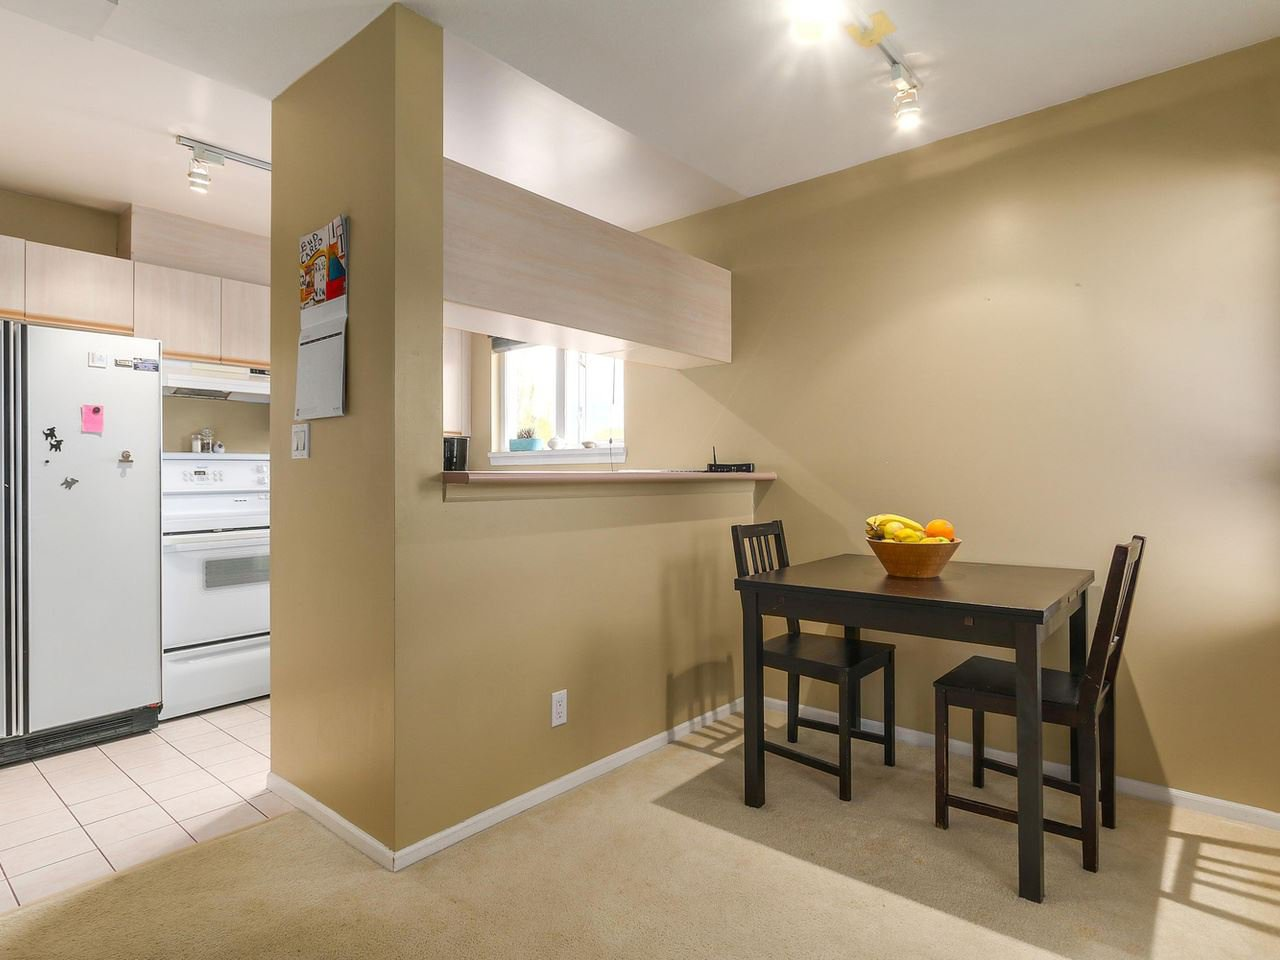 """Photo 8: Photos: 301 1623 E 2ND Avenue in Vancouver: Grandview VE Condo for sale in """"GRANDVIEW MANOR"""" (Vancouver East)  : MLS®# R2122830"""